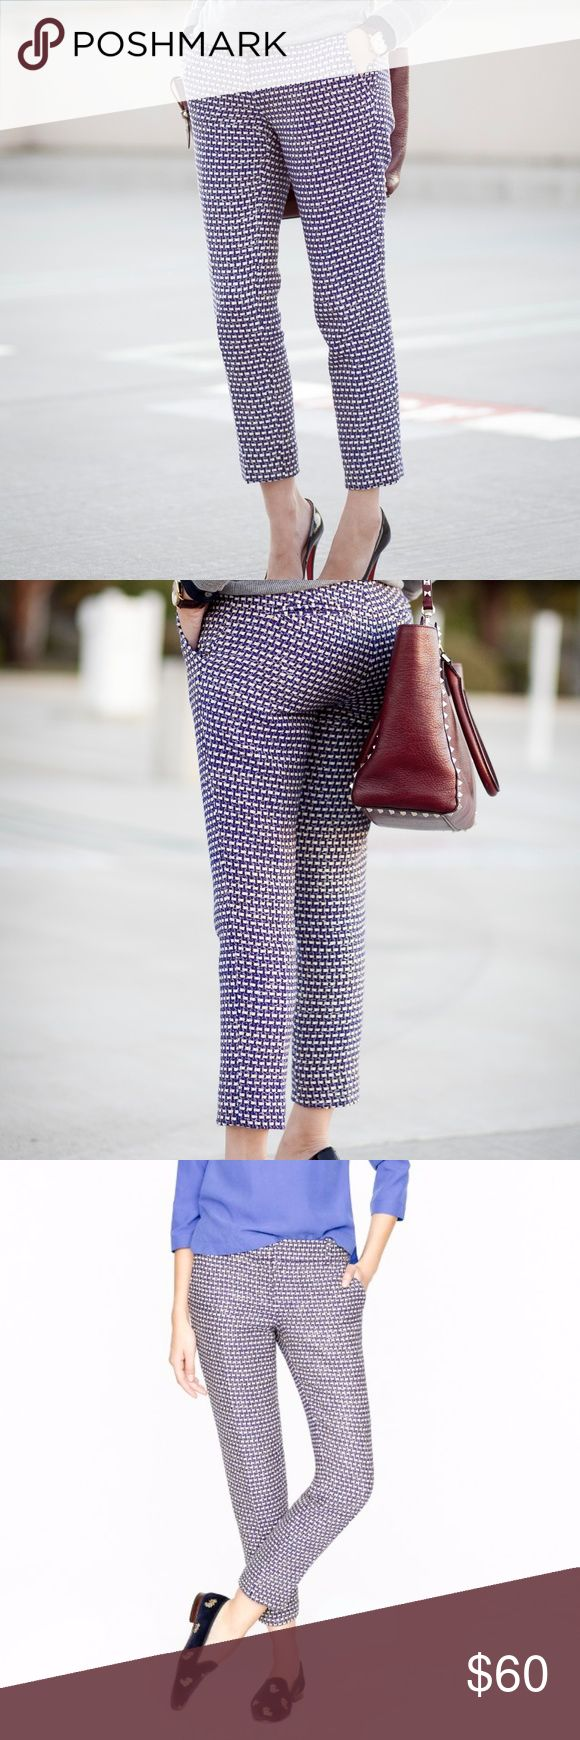 J.CREW Café Capri Cropped Pants Navy Tweed $148 J.CREW Café Capri Cropped Pants Navy Tweed Sz 2  The famous café capri (one of our top bottoms) gets an extra dose of polish in this lightweight basket-weave tweed our designers handpicked for its graphic colors and subtle sheen—it's woven with tinselly Lurex® threads throughout. Pair it with its matching jacket (plus the pumps, if you dare) for a classic, ladylike spin on the hookup.  Silk/cotton/viscose. City fit—our lowest rise. Sits just…